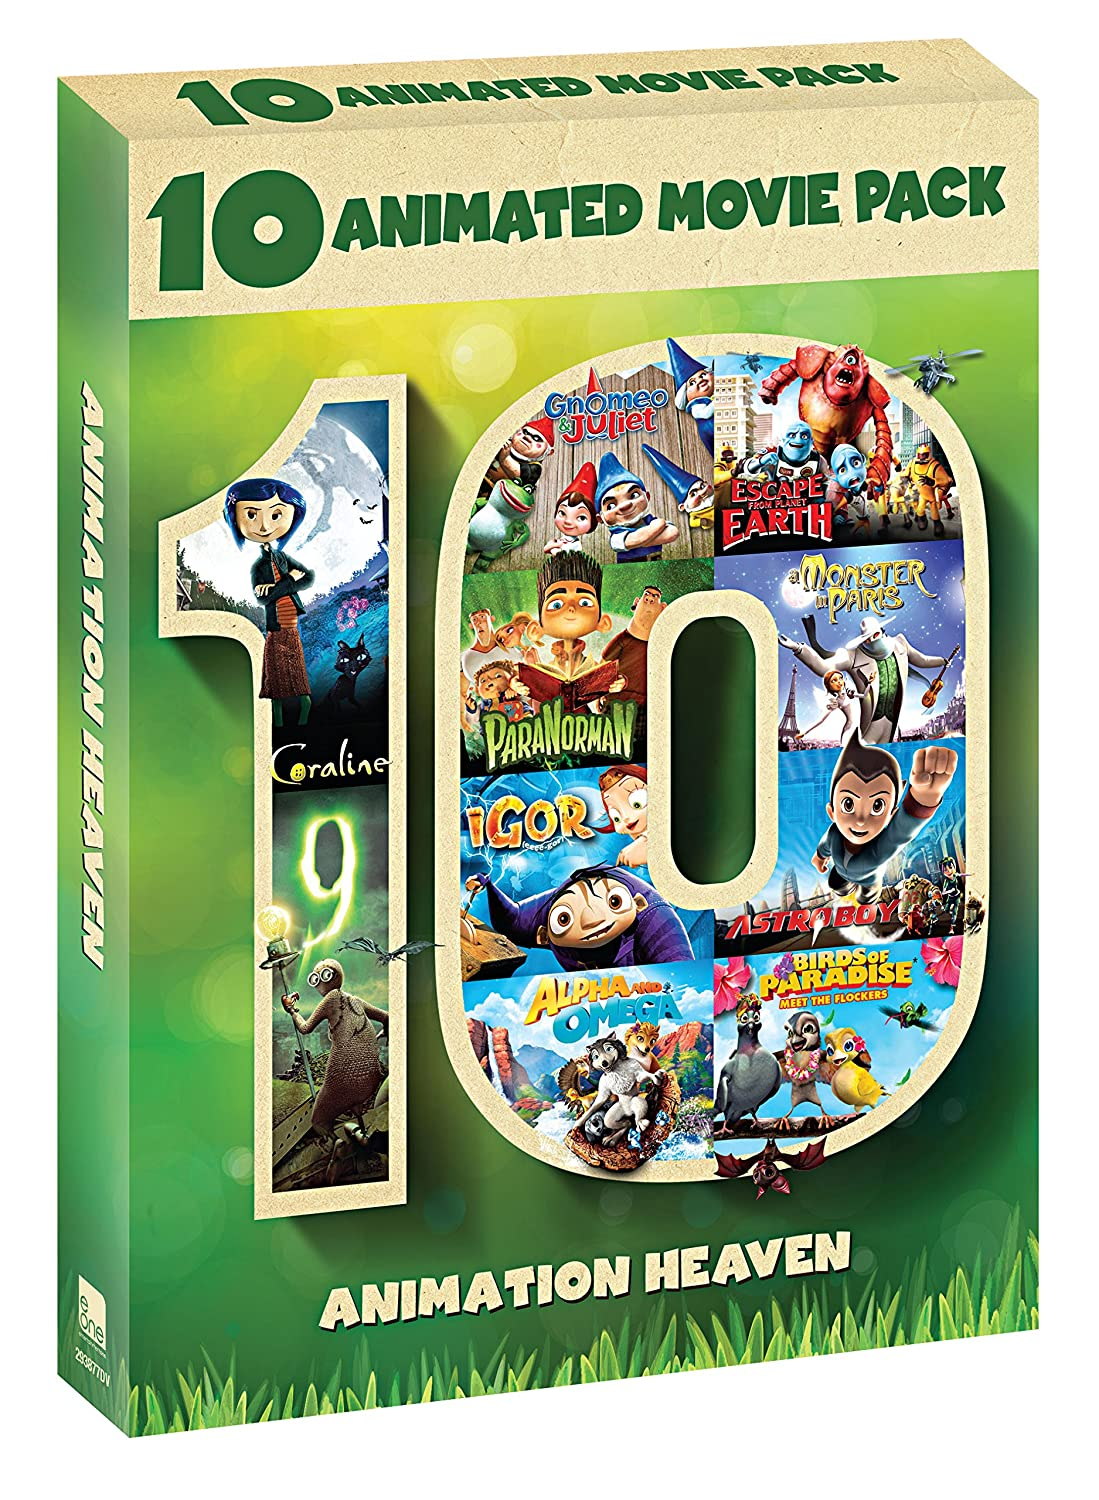 Amazon Com Coraline Gnomeo Juliet Paranorman Igor Alpha And Omega 9 Escape From Planet Earth A Monster In Paris Astro Boy Birds Of Paradise Movies Tv